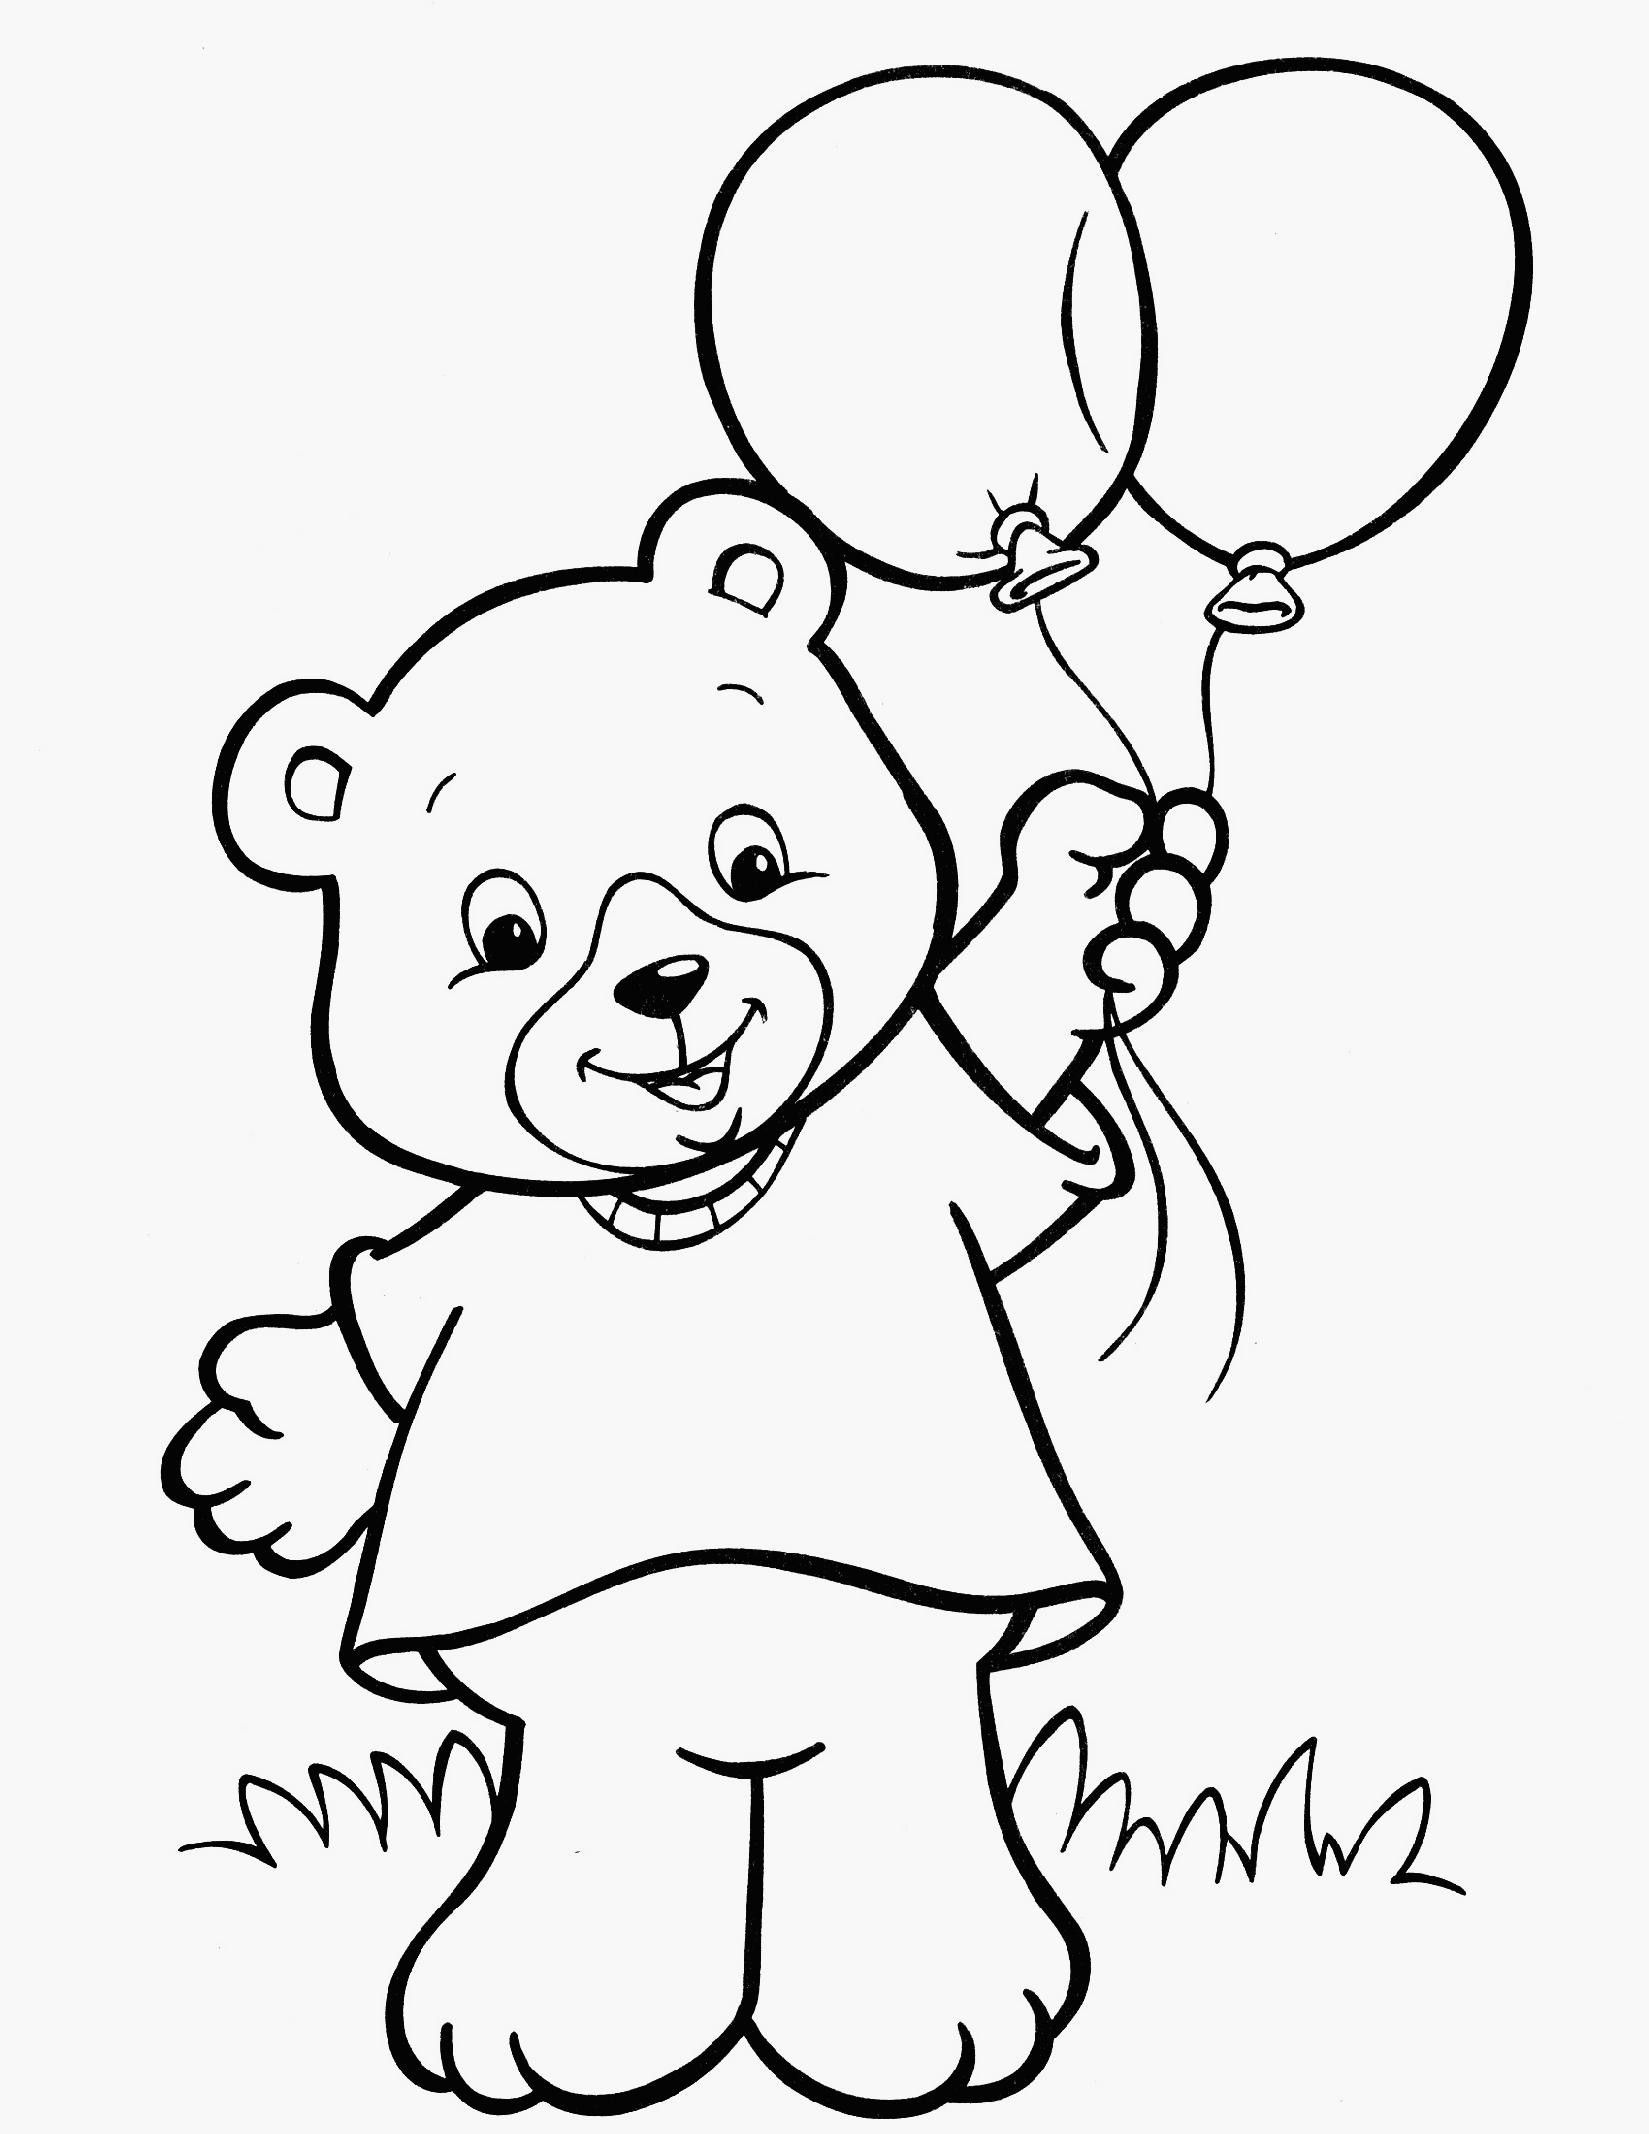 coloring pictures for 3 year olds 3 year old coloring pages free printable 3 year old olds for pictures year coloring 3